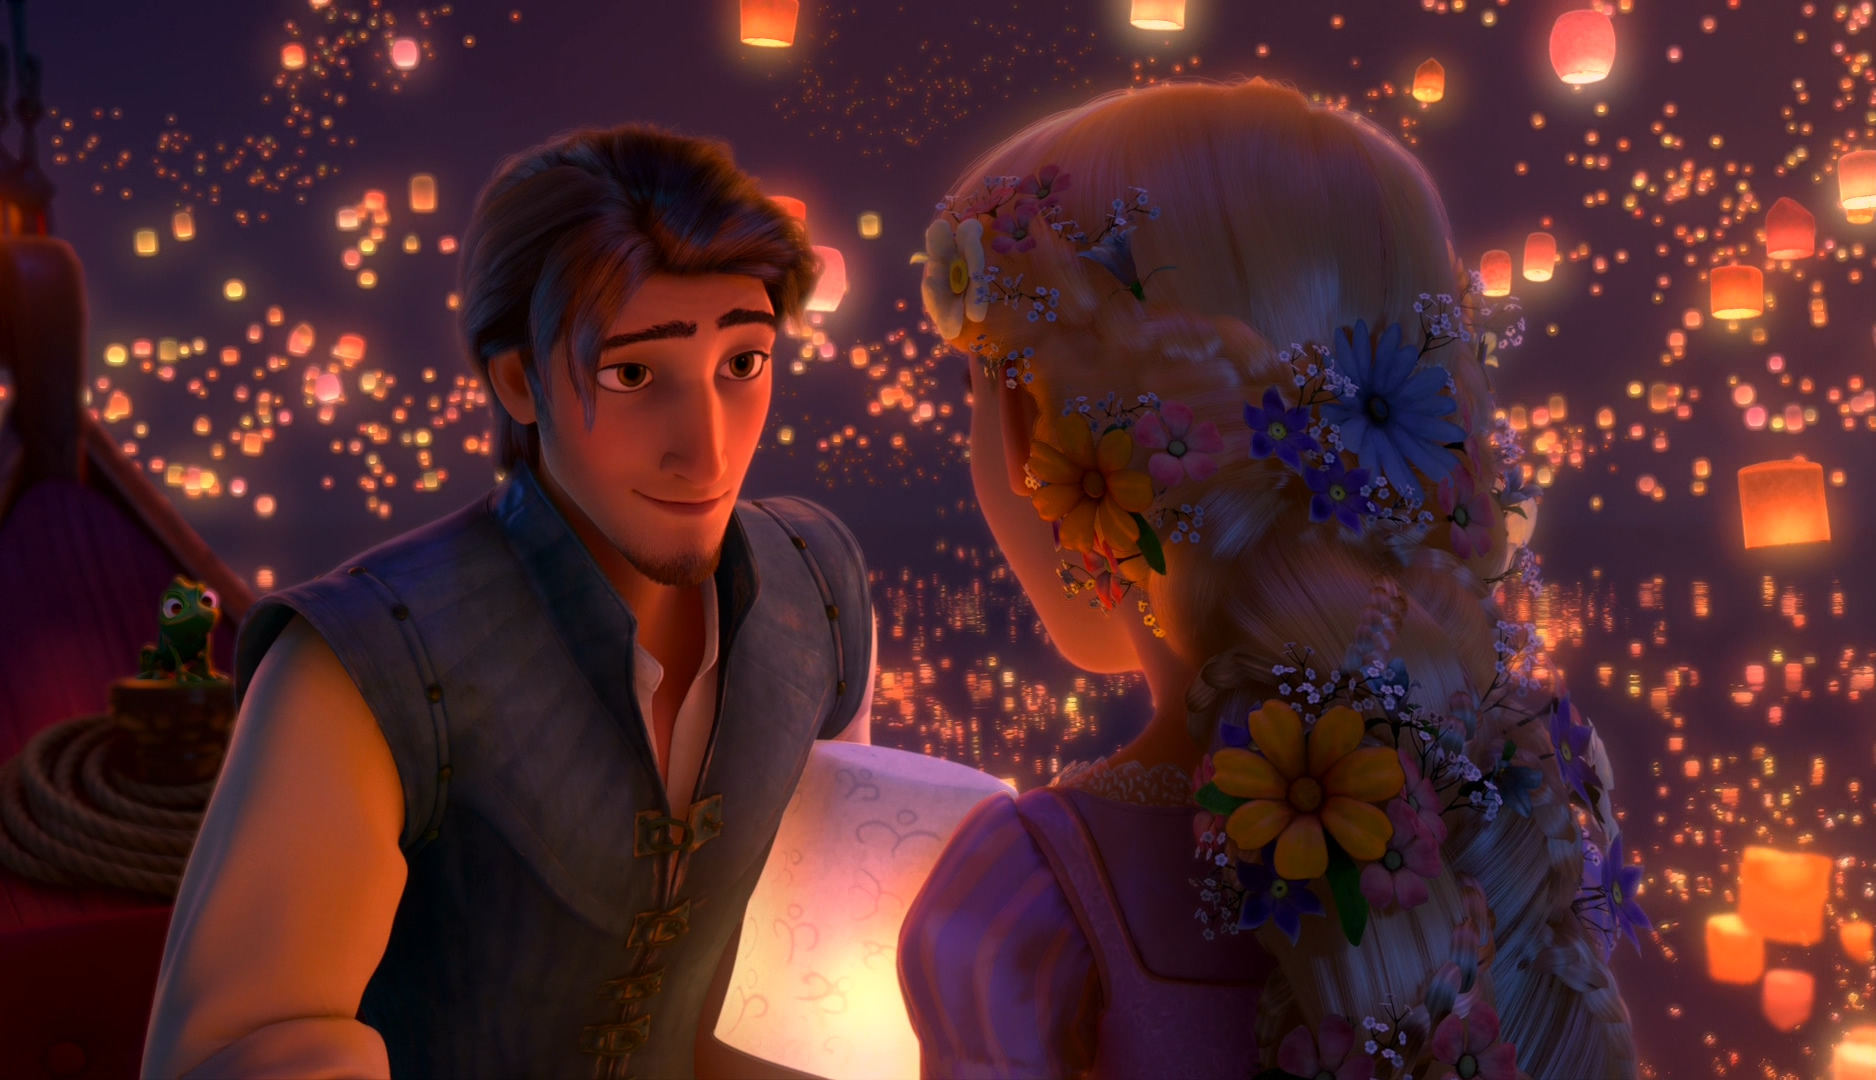 Tangled Rapunzel Cute Wallpaper By HD Wallpapers Daily 1876x1080 For Sky Lanterns 45gtk